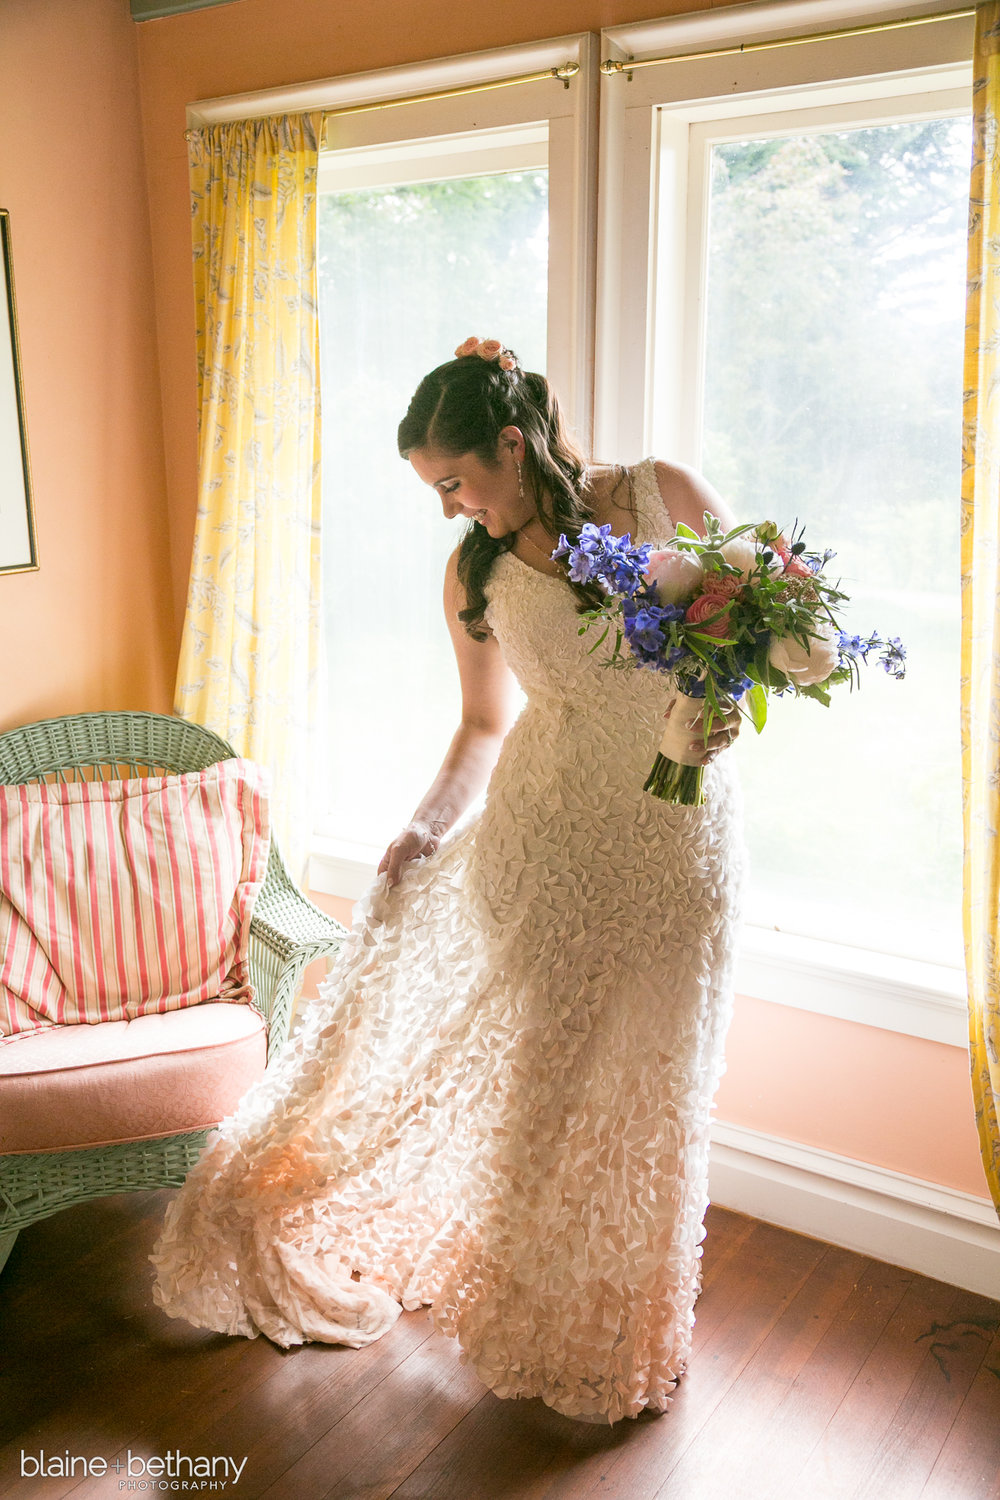 Bridalbliss.com | Portland Wedding | Oregon Event Planning and Design | Blaine & Bethany Photography